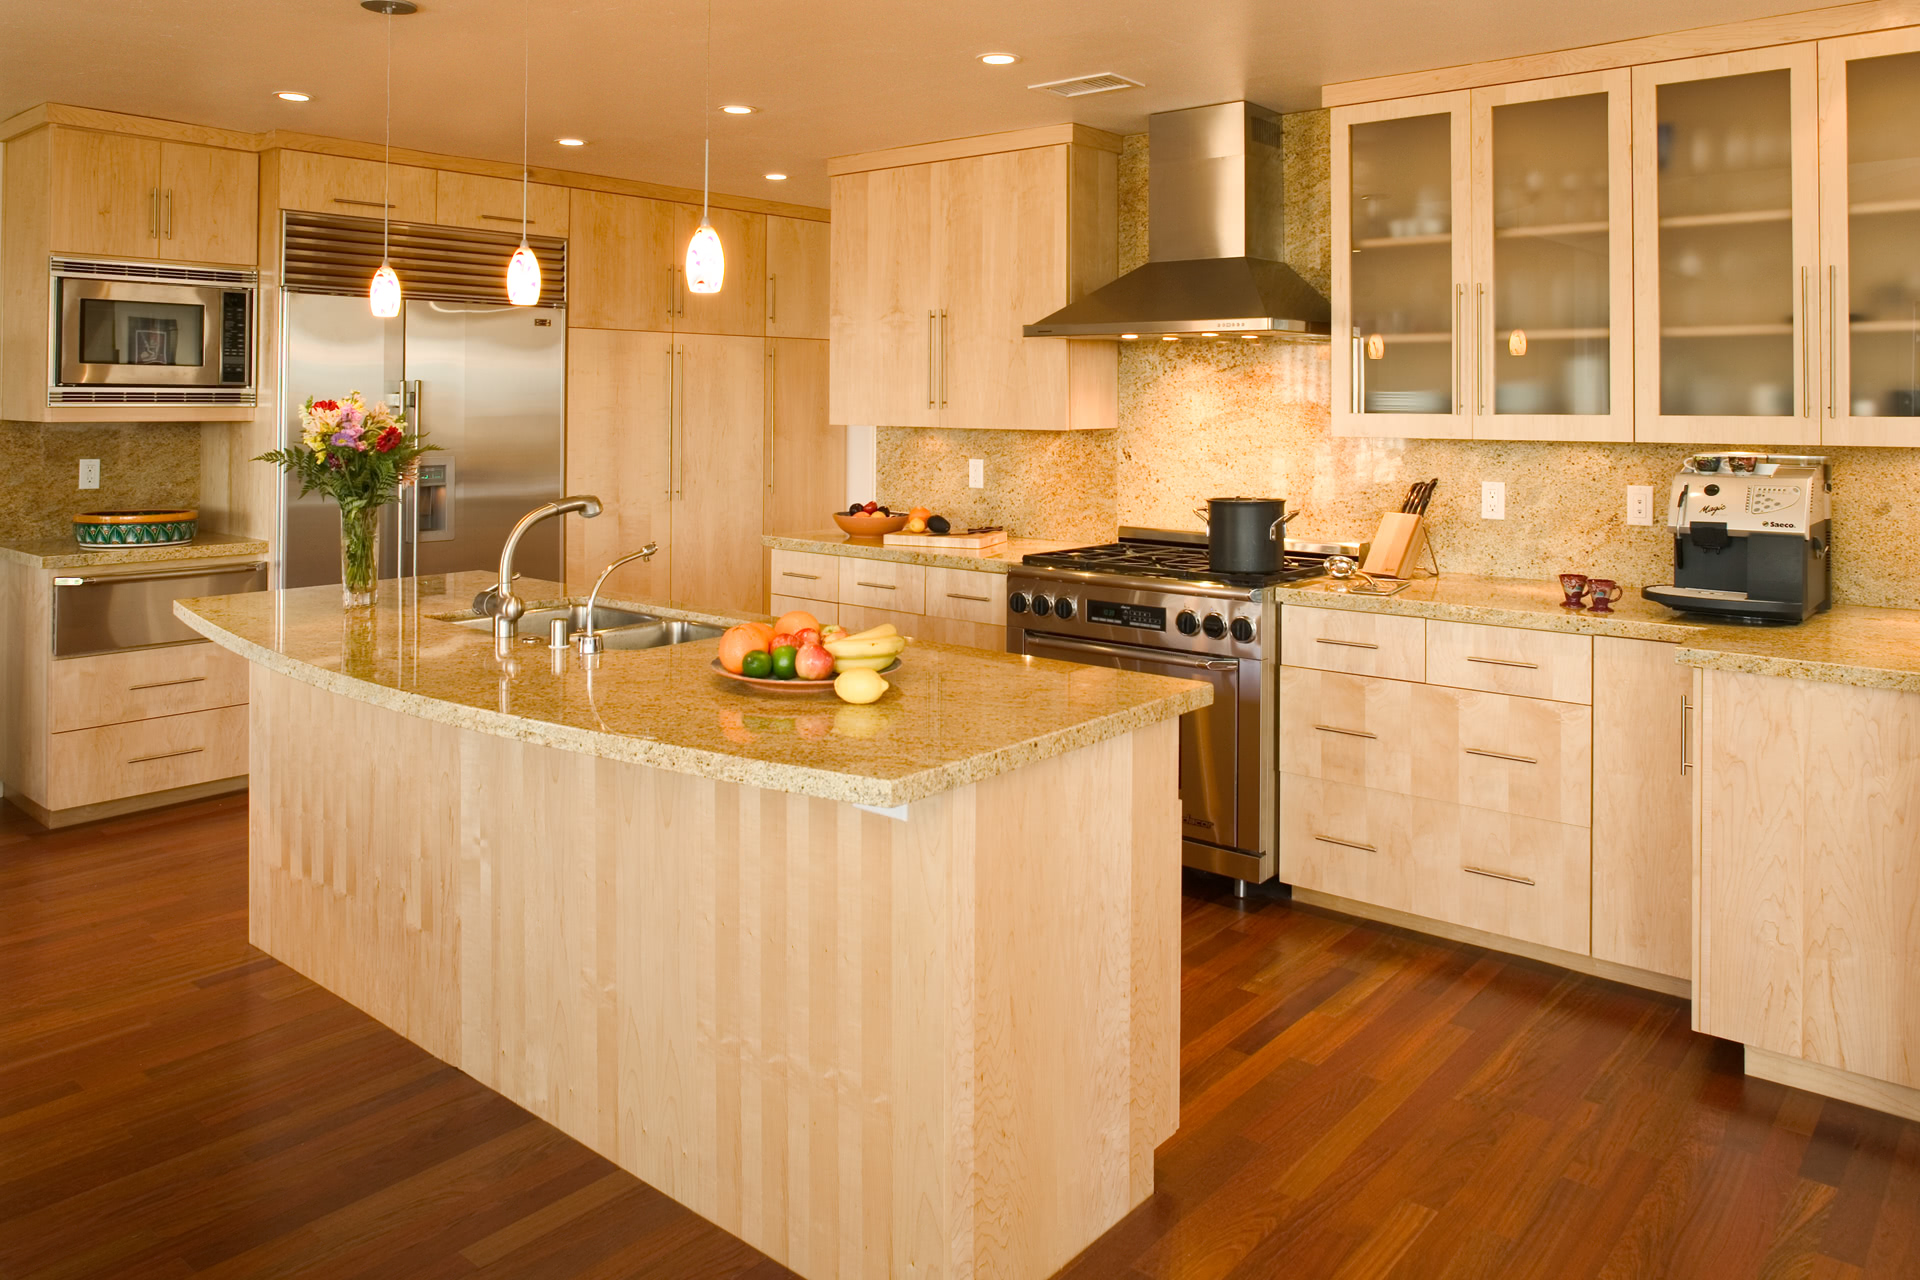 contemporary kitchen cabinets with quartersawn maple wood - Contemporary Kitchen Cabinets